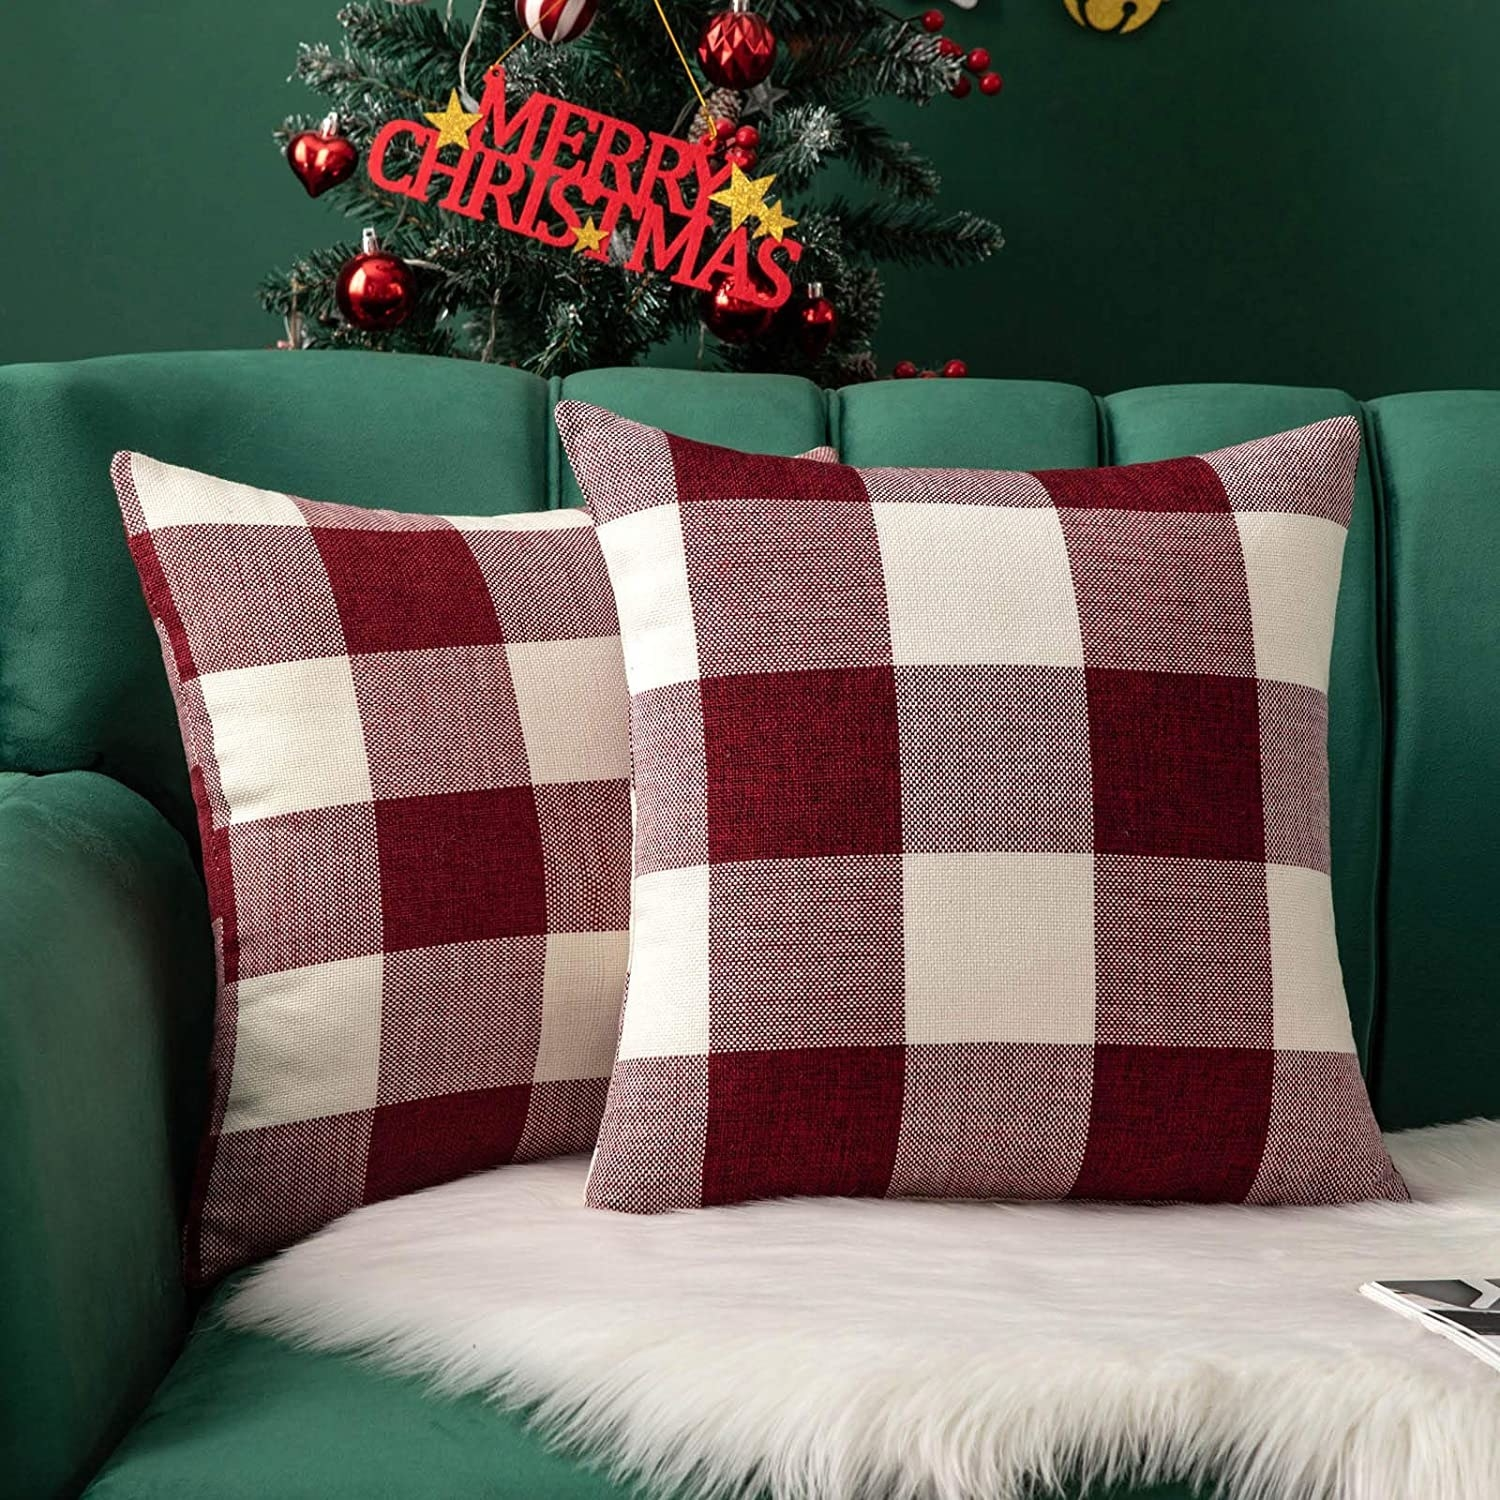 A pair of pillows covered in plaid cases on a velvet couch